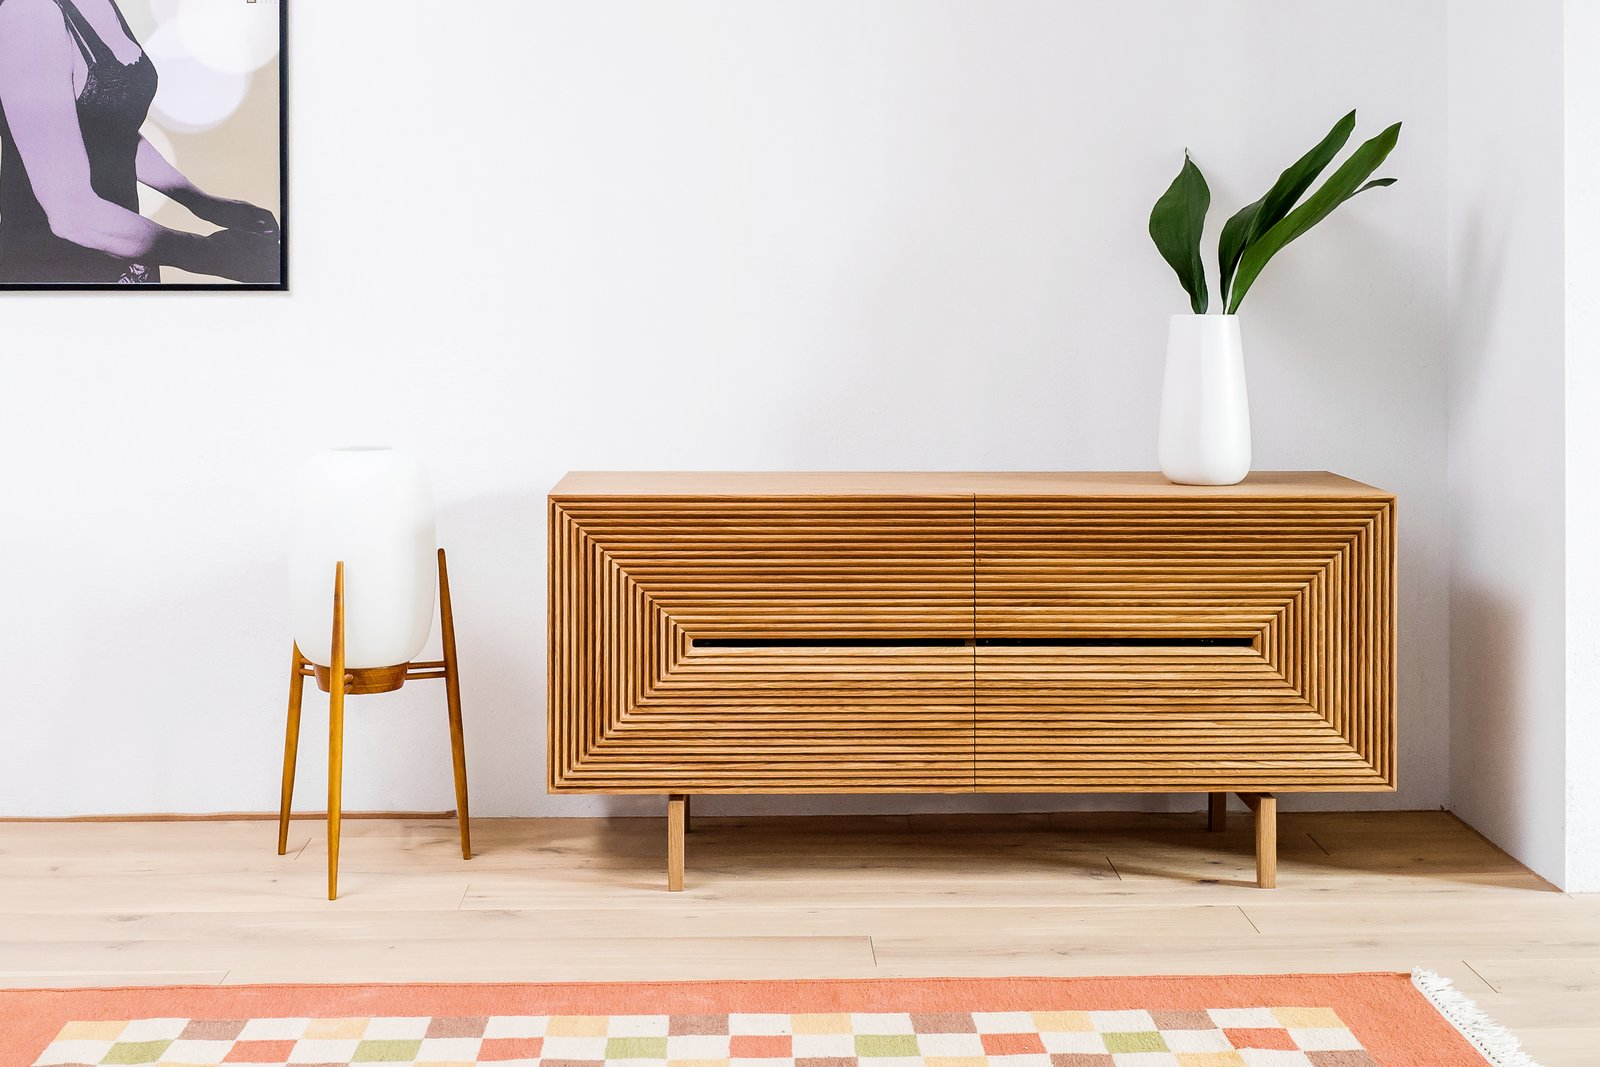 Living Room and Console Tables Sideboard custom designed by Loft Kolasiński  Photo 9 of 12 in A Family's Loft in Poland Gets a Minimalist Renovation That's Both Elegant and Functional